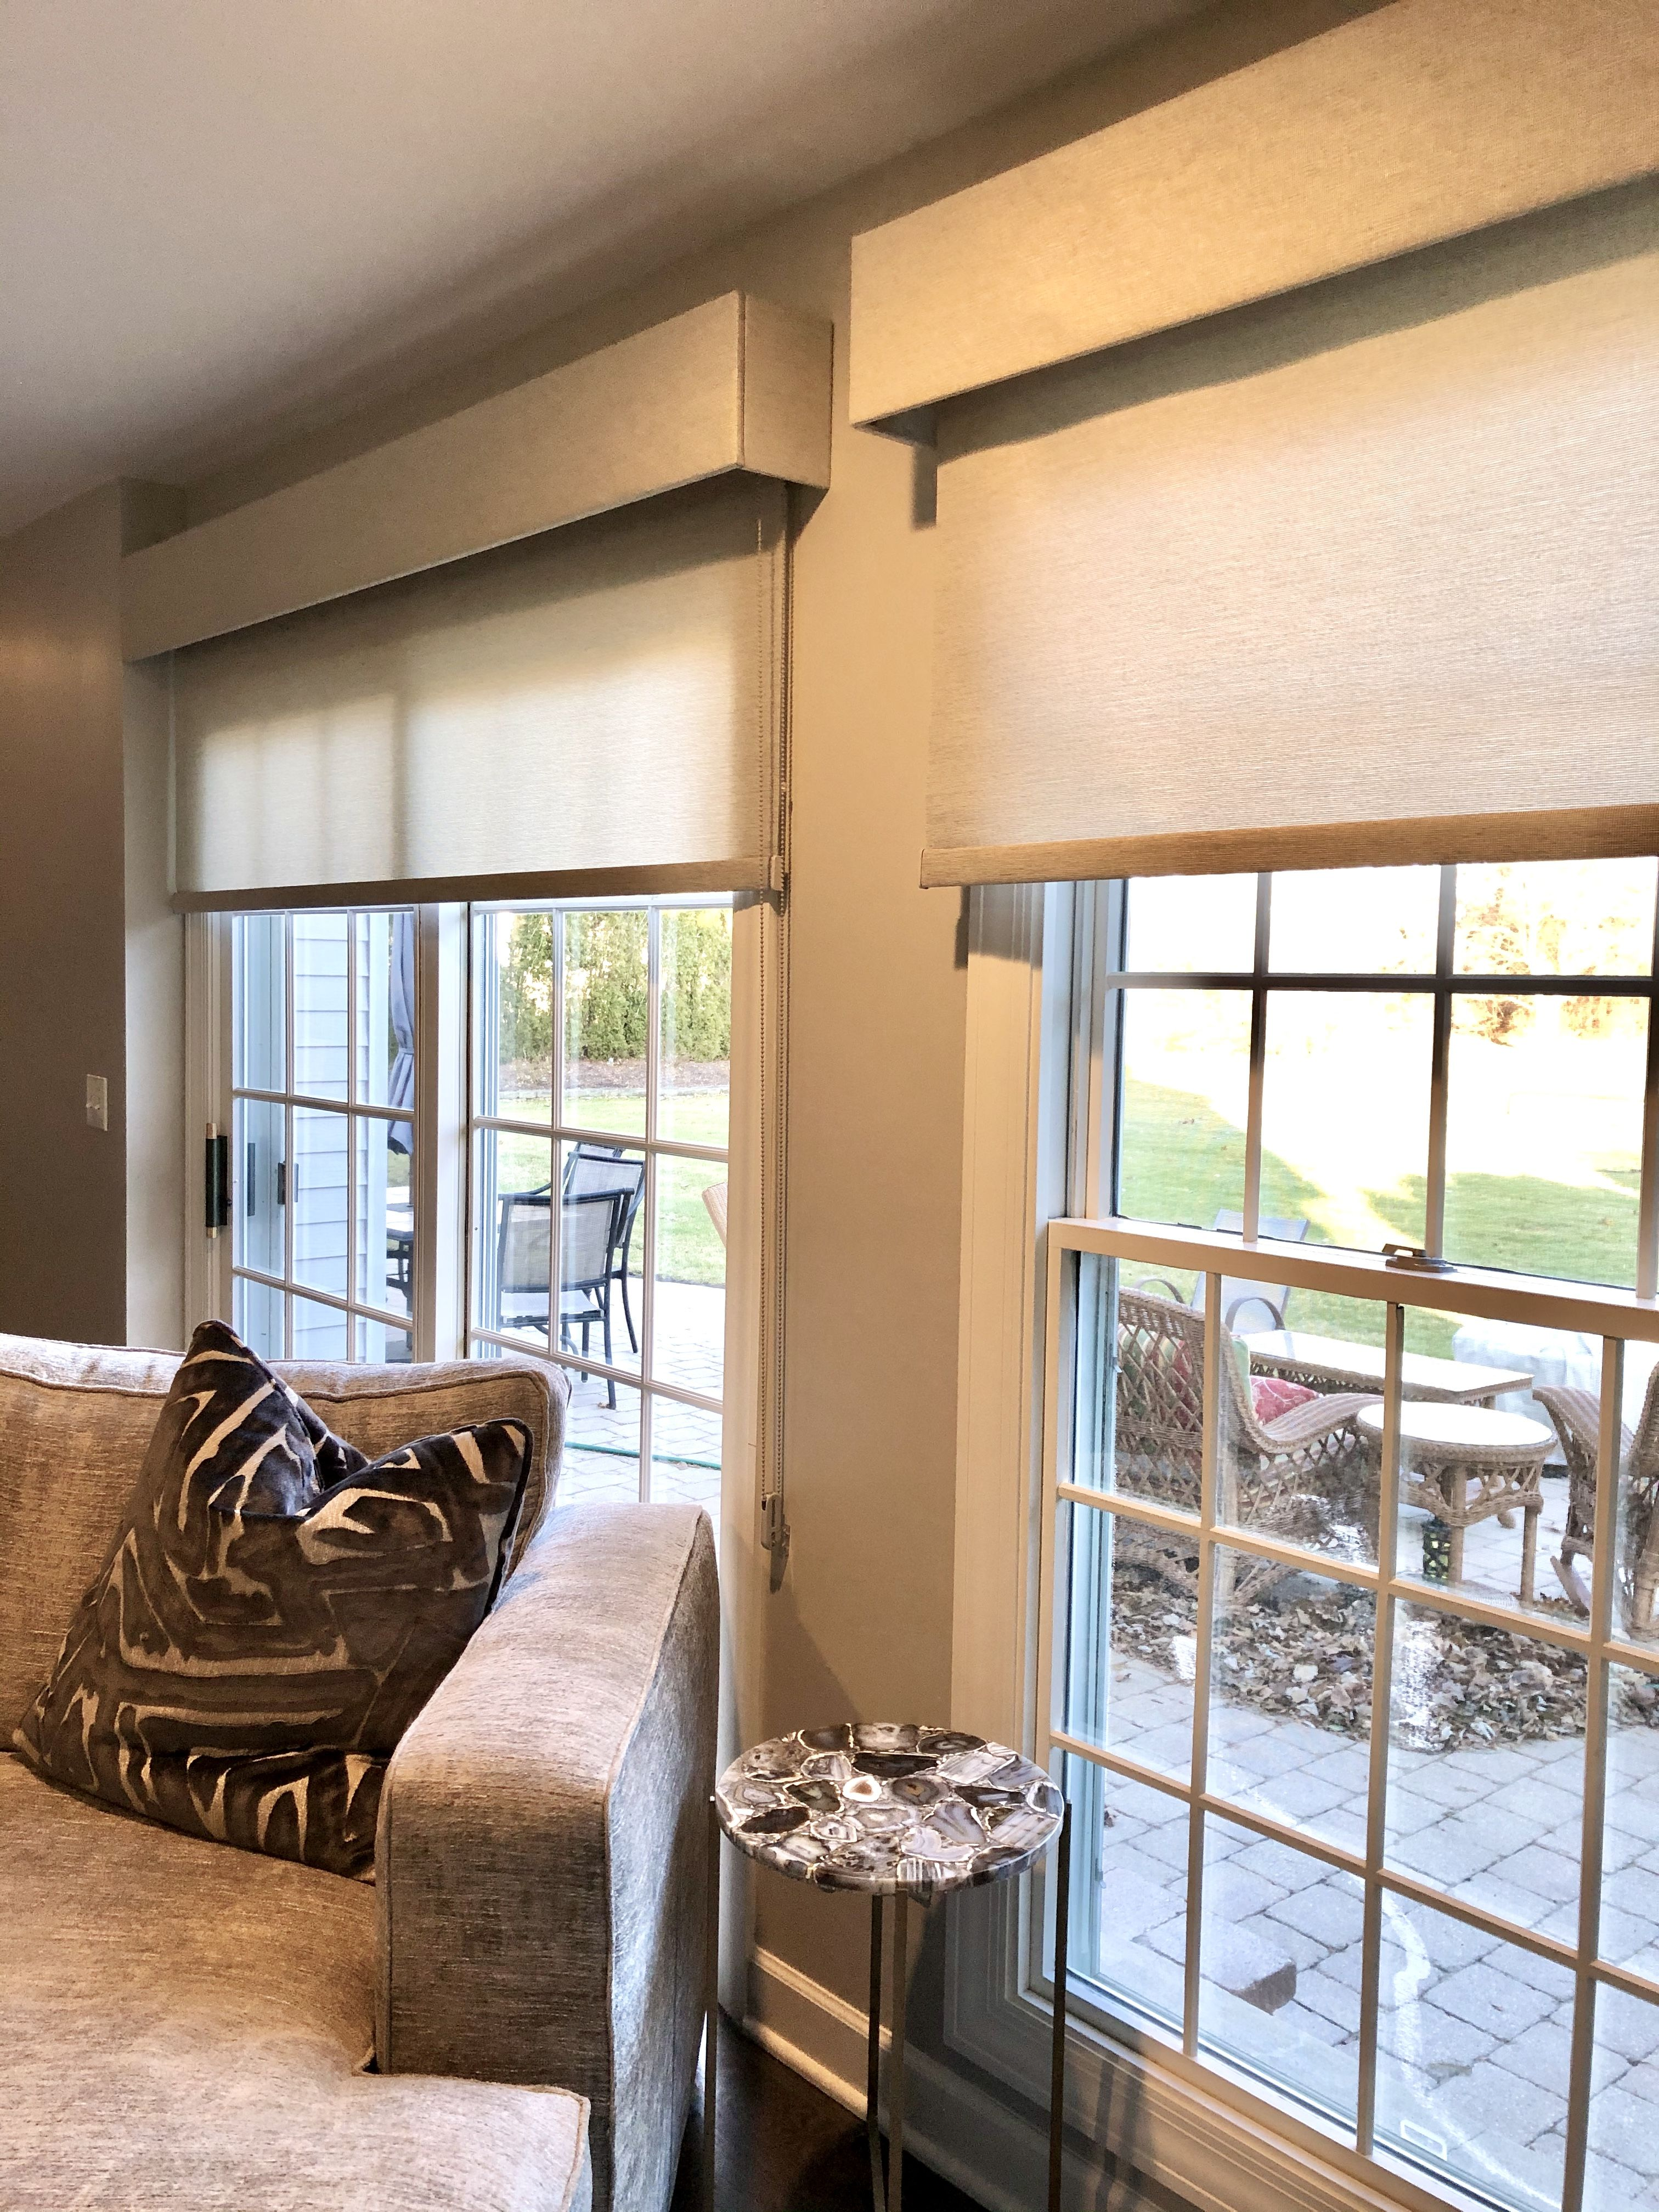 Roller Shades And Valances Long Grove Il In 2020 Roller Shades